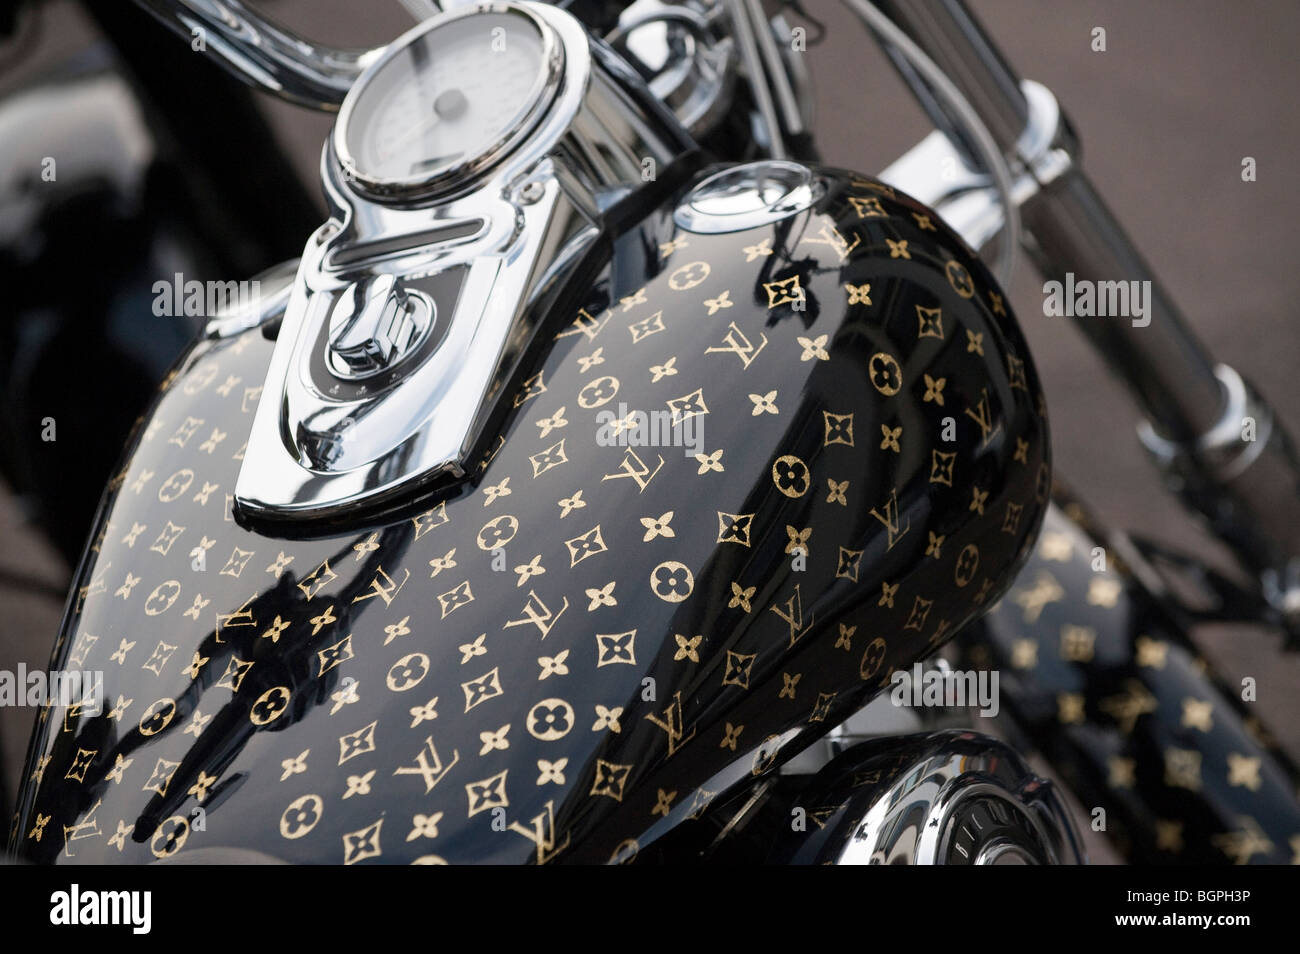 louis vuitton harley davidson motorcycle stock photo royalty free image 27541242 alamy. Black Bedroom Furniture Sets. Home Design Ideas